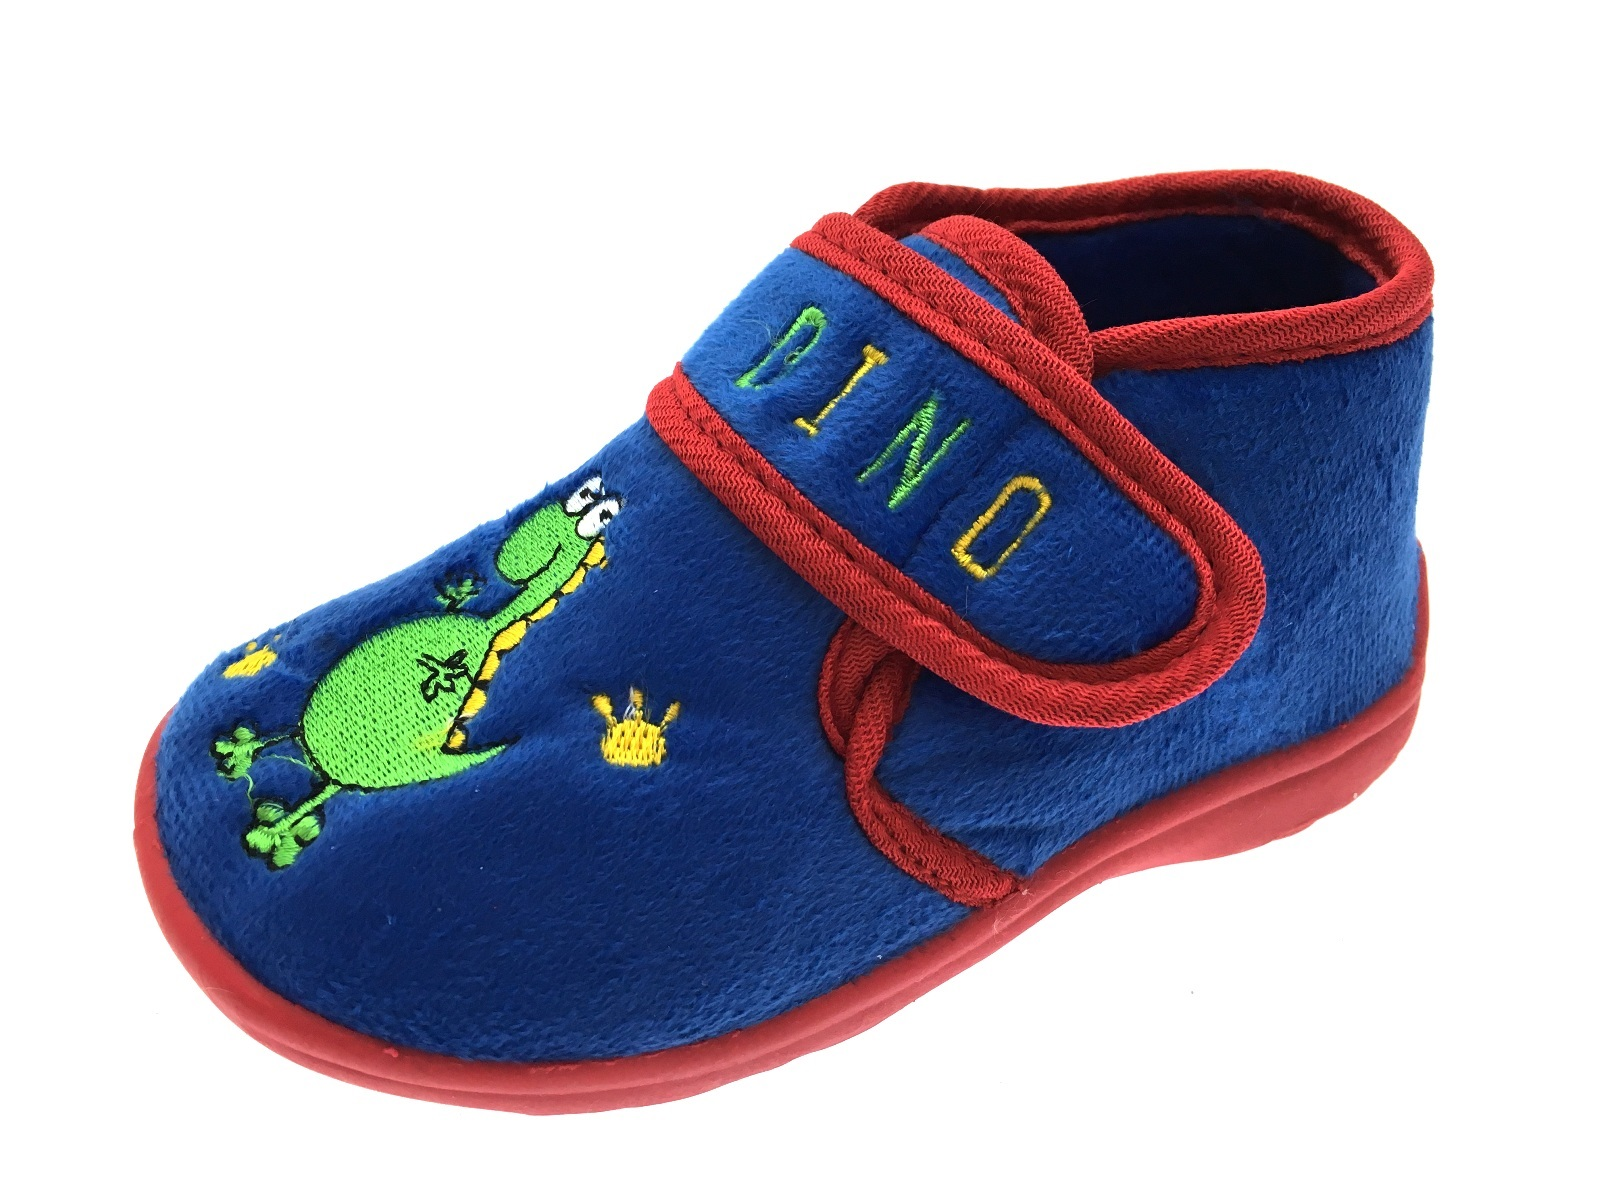 Kids Boys Toddlers Slippers Boots Booties Childrens Shoes Xmas Gift Size 25-8